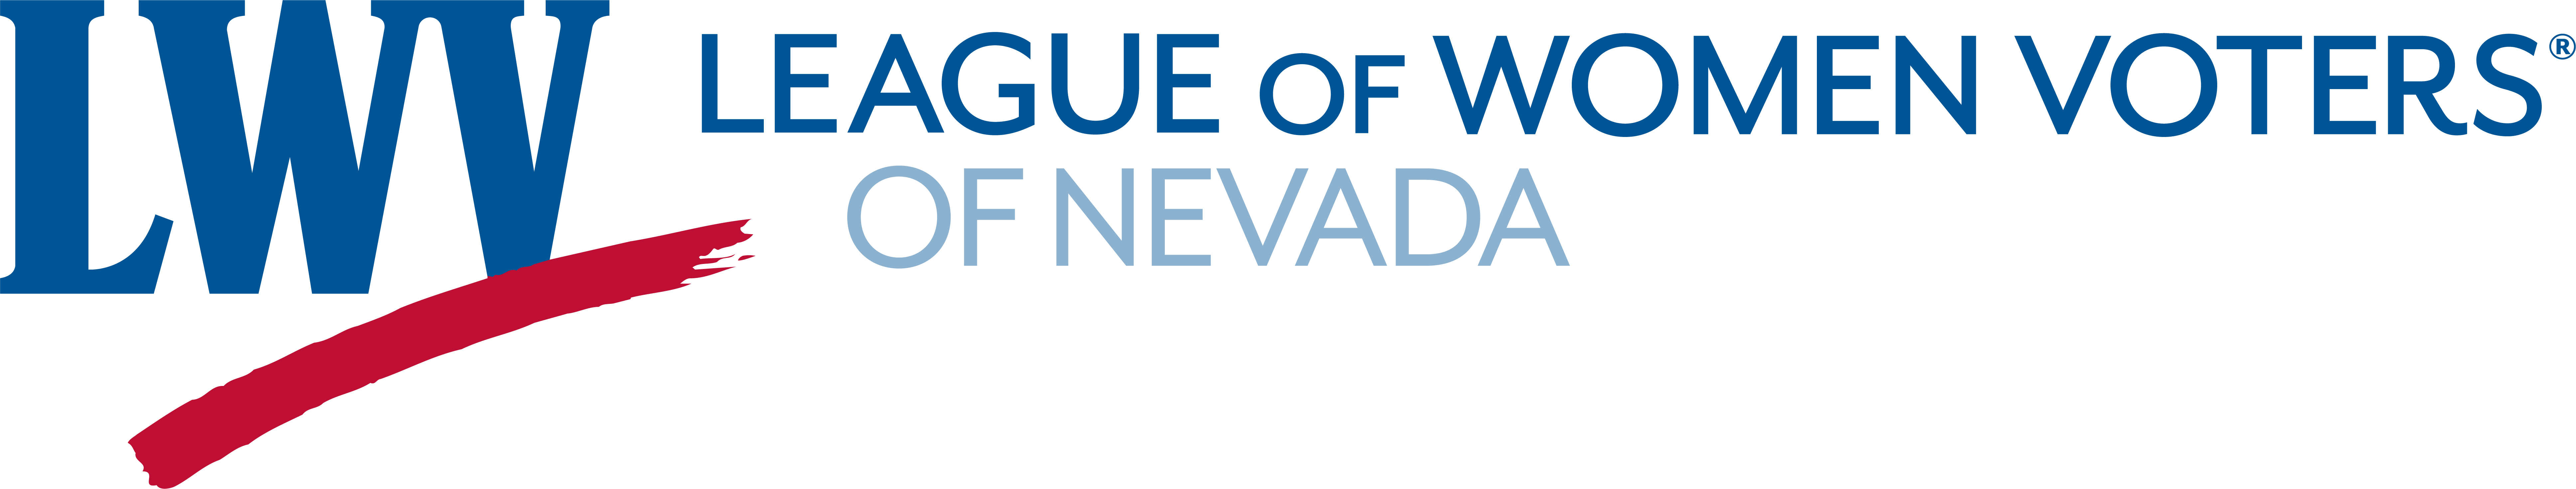 League of Women Voters Nevada